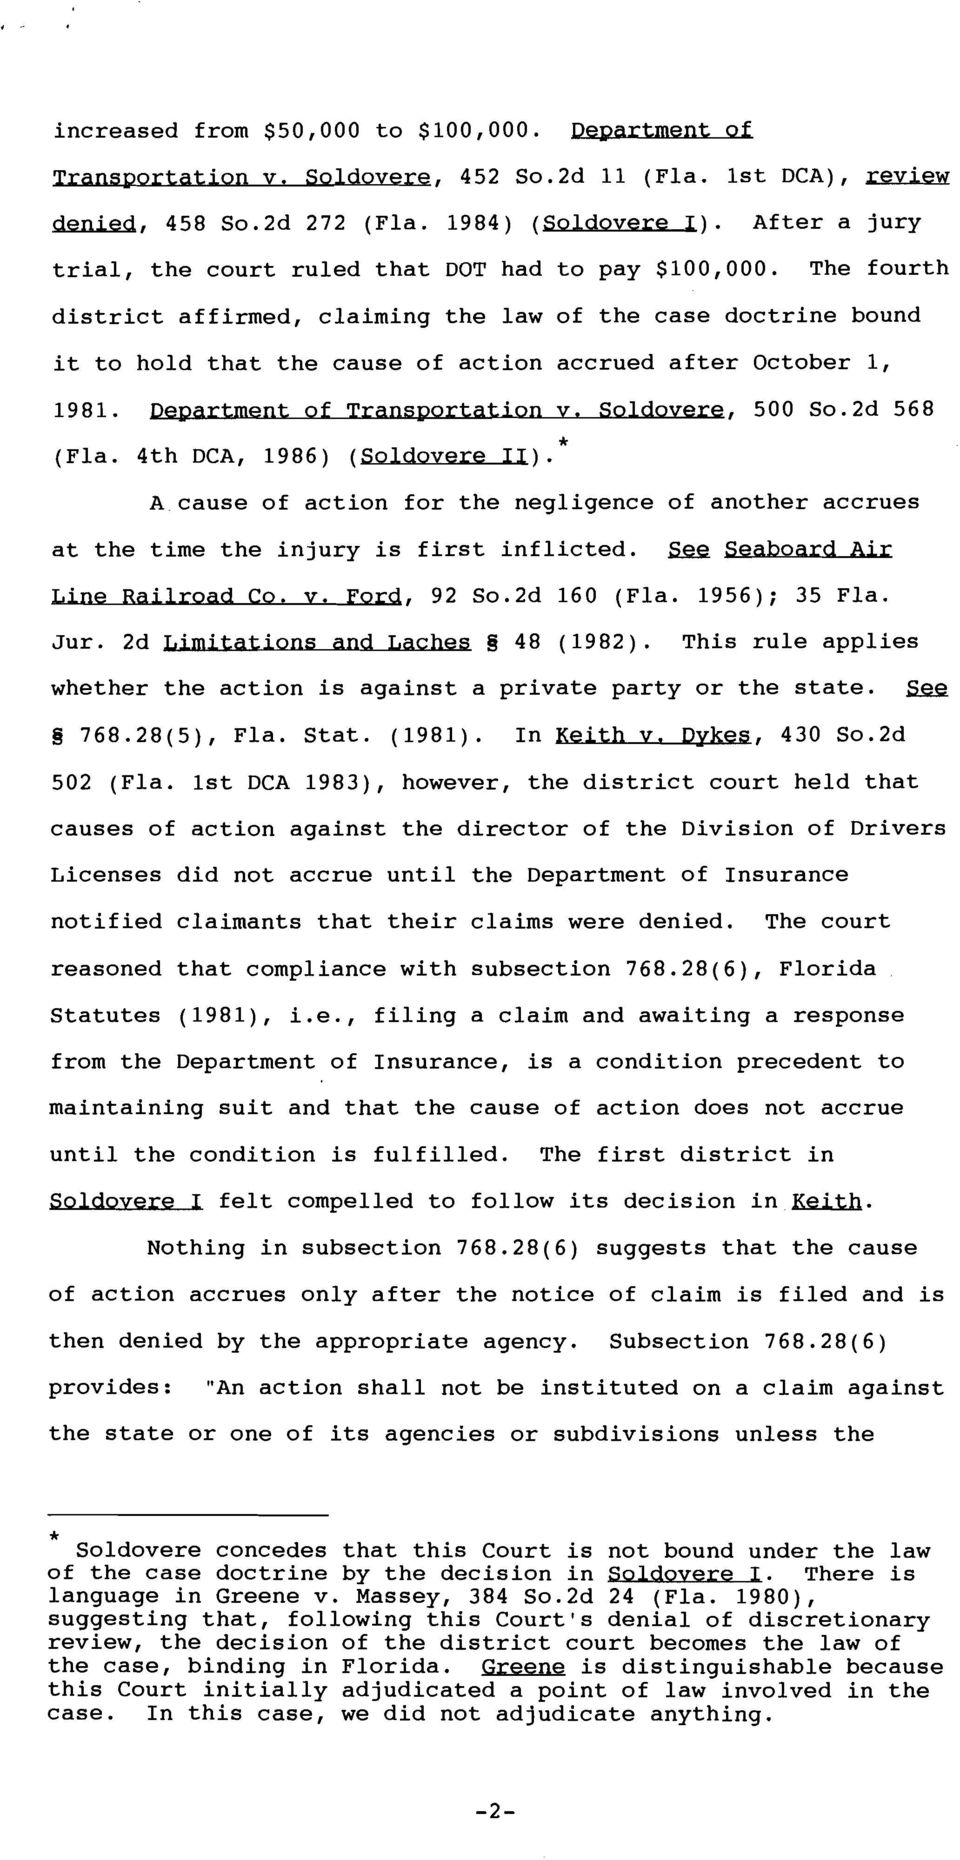 The fourth district affirmed, claiming the law of the case doctrine bound it to hold that the cause of action accrued after October 1, 1981. Degment of Transportation v. Soldovere, 500 So.